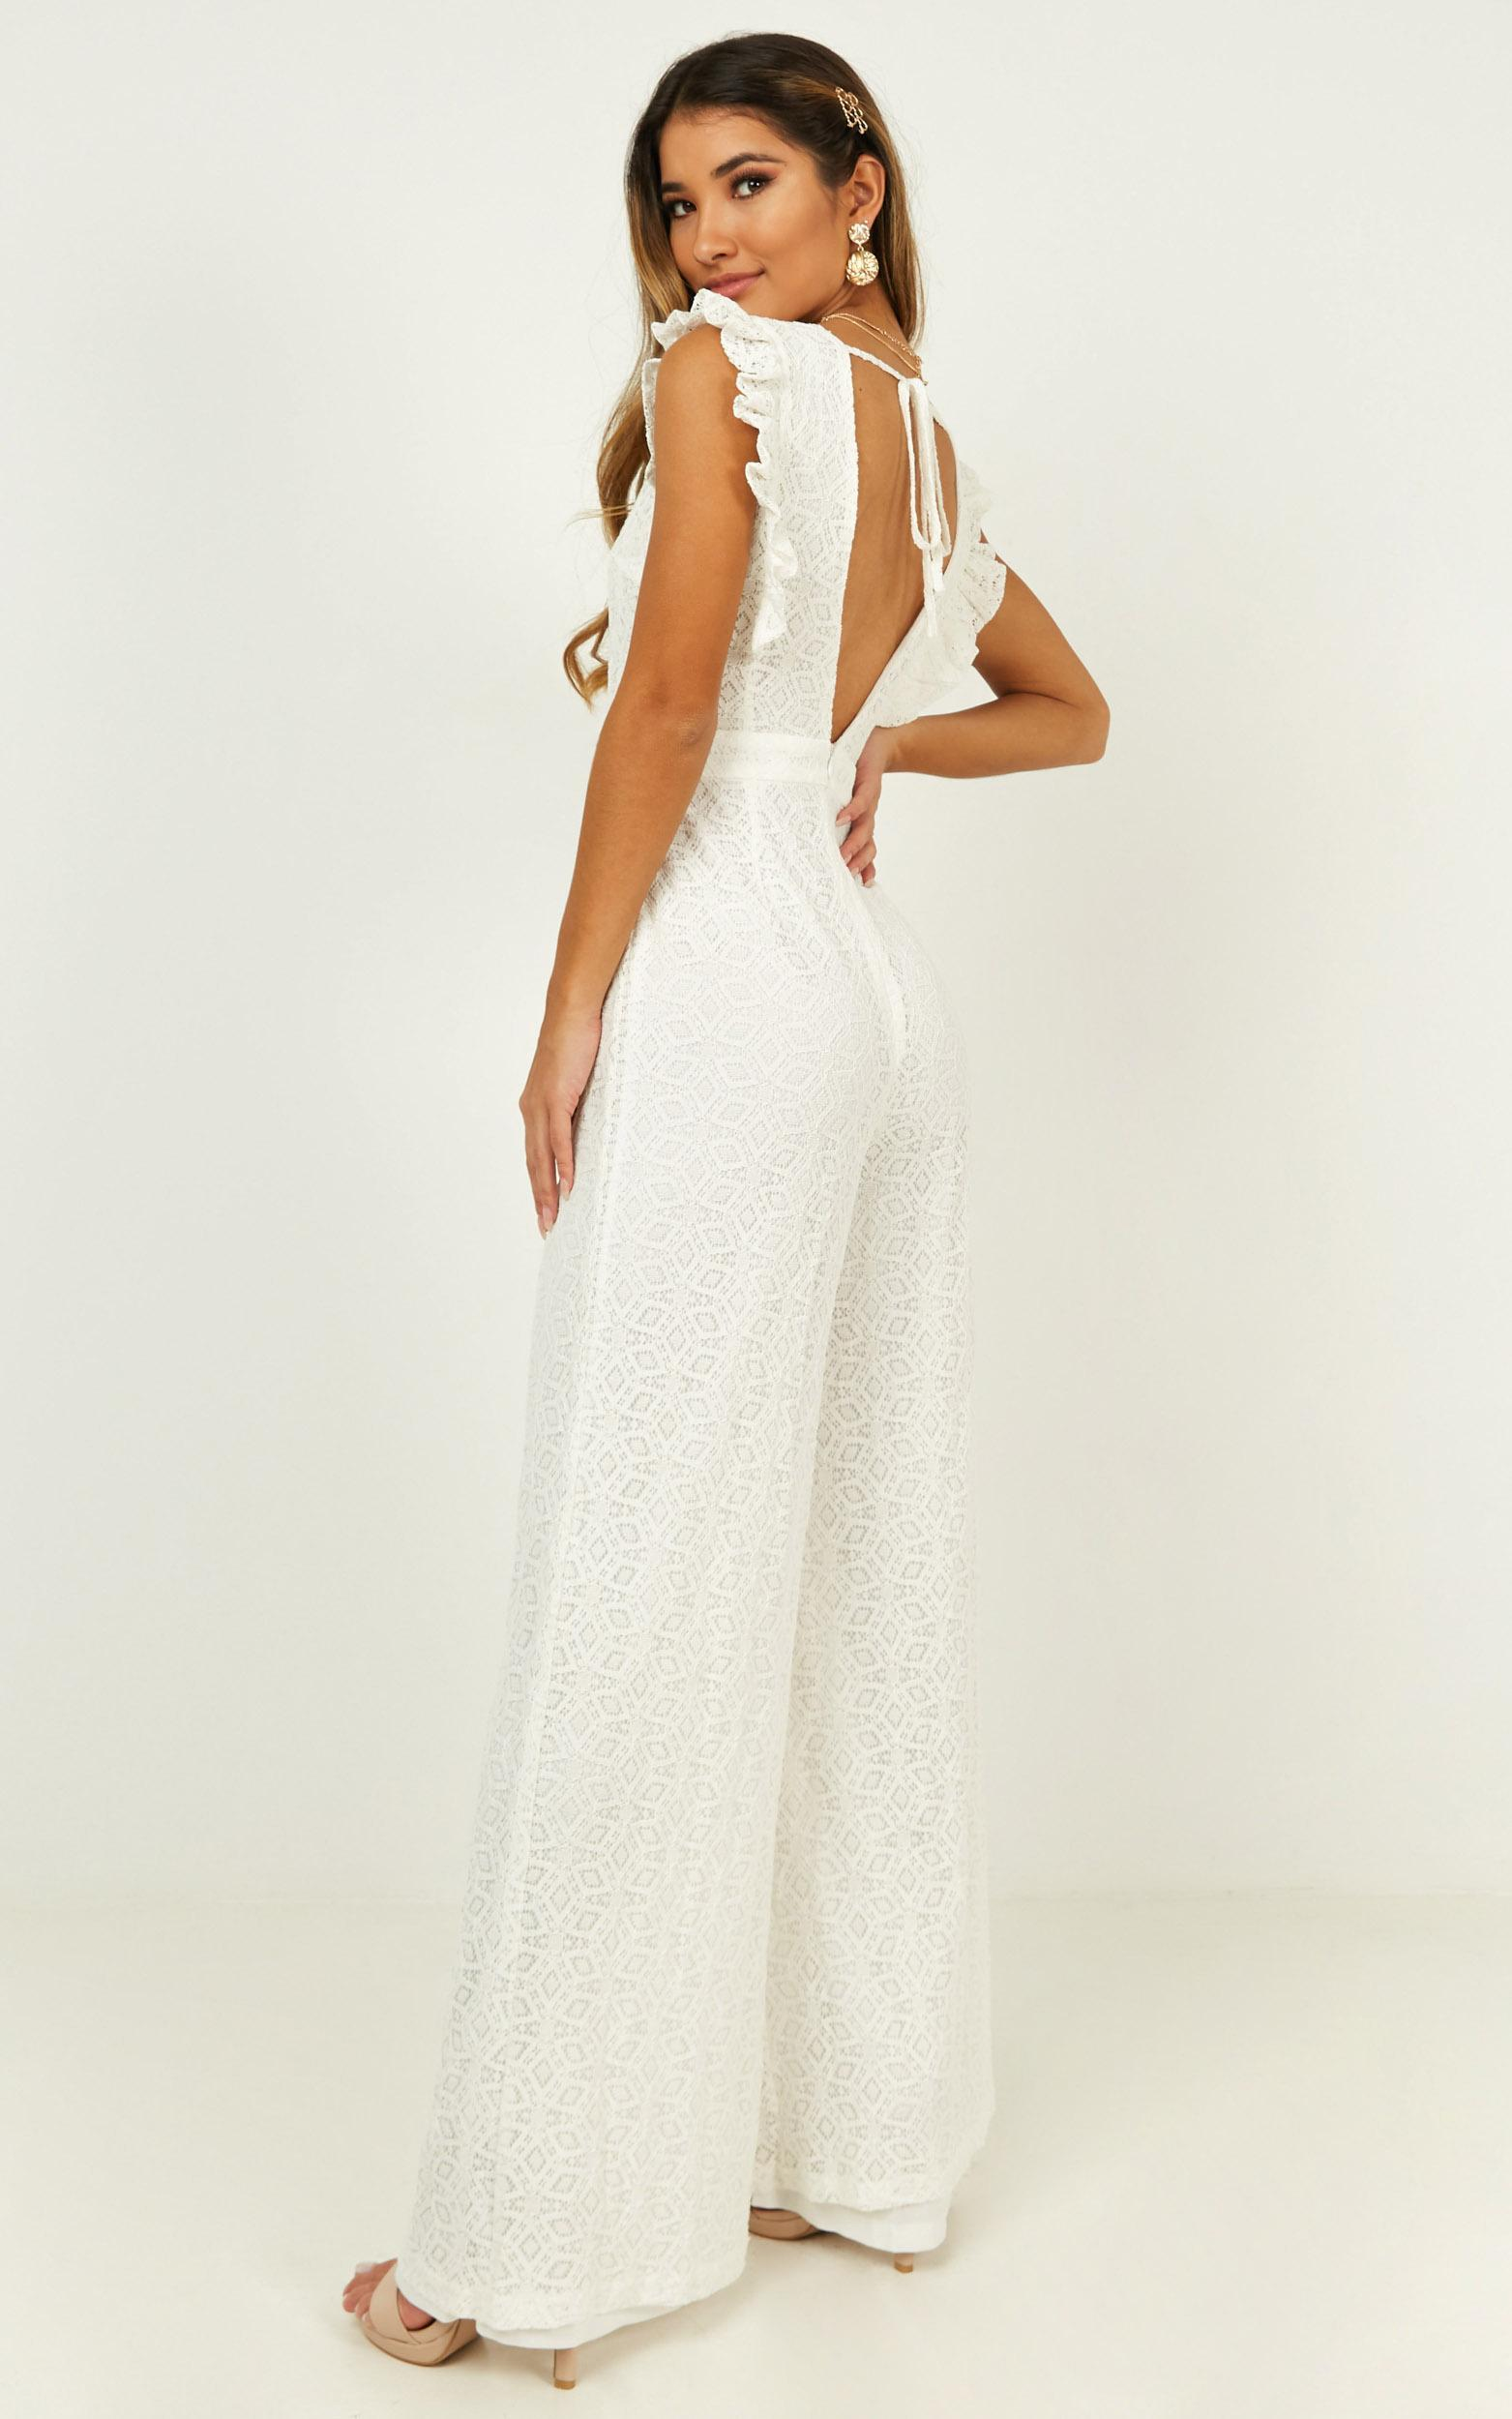 If You Wanna Jumpsuit in white lace - 20 (XXXXL), White, hi-res image number null